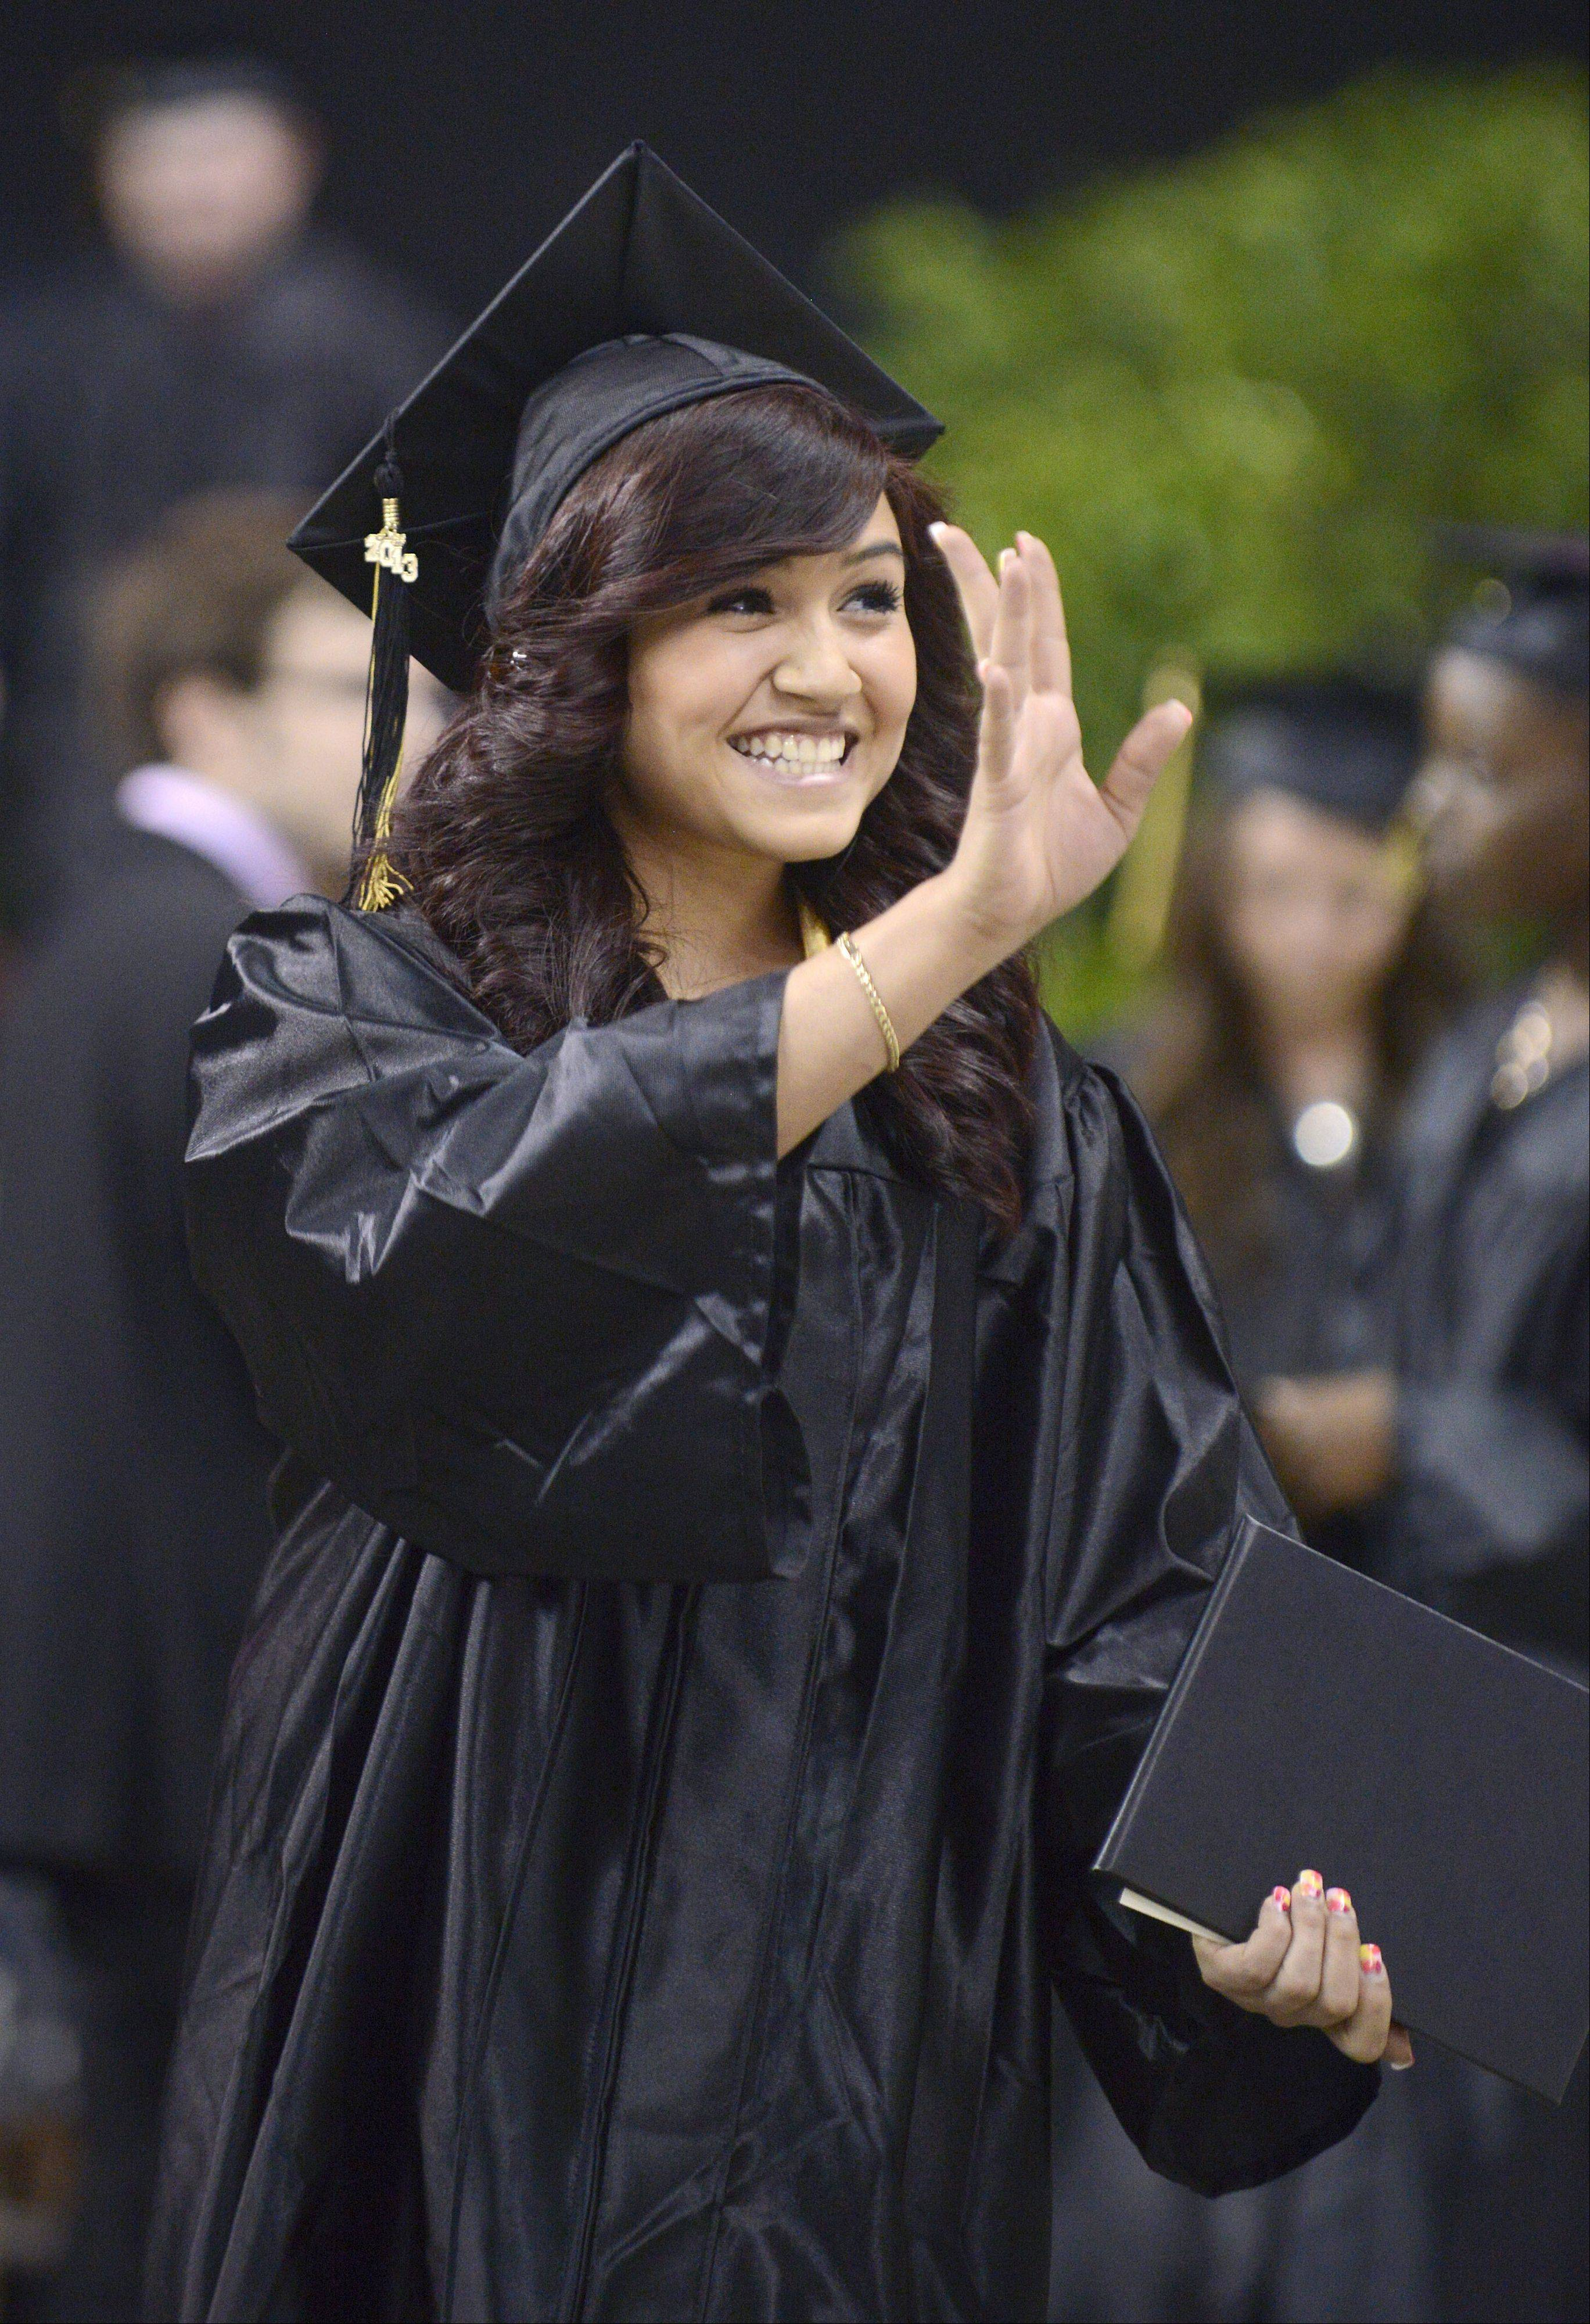 Michelle Jimenez waves to family after receiving her diploma at Streamwood High School's commencement ceremony at the Sears Centre in Hoffman Estates on Saturday, May 25.